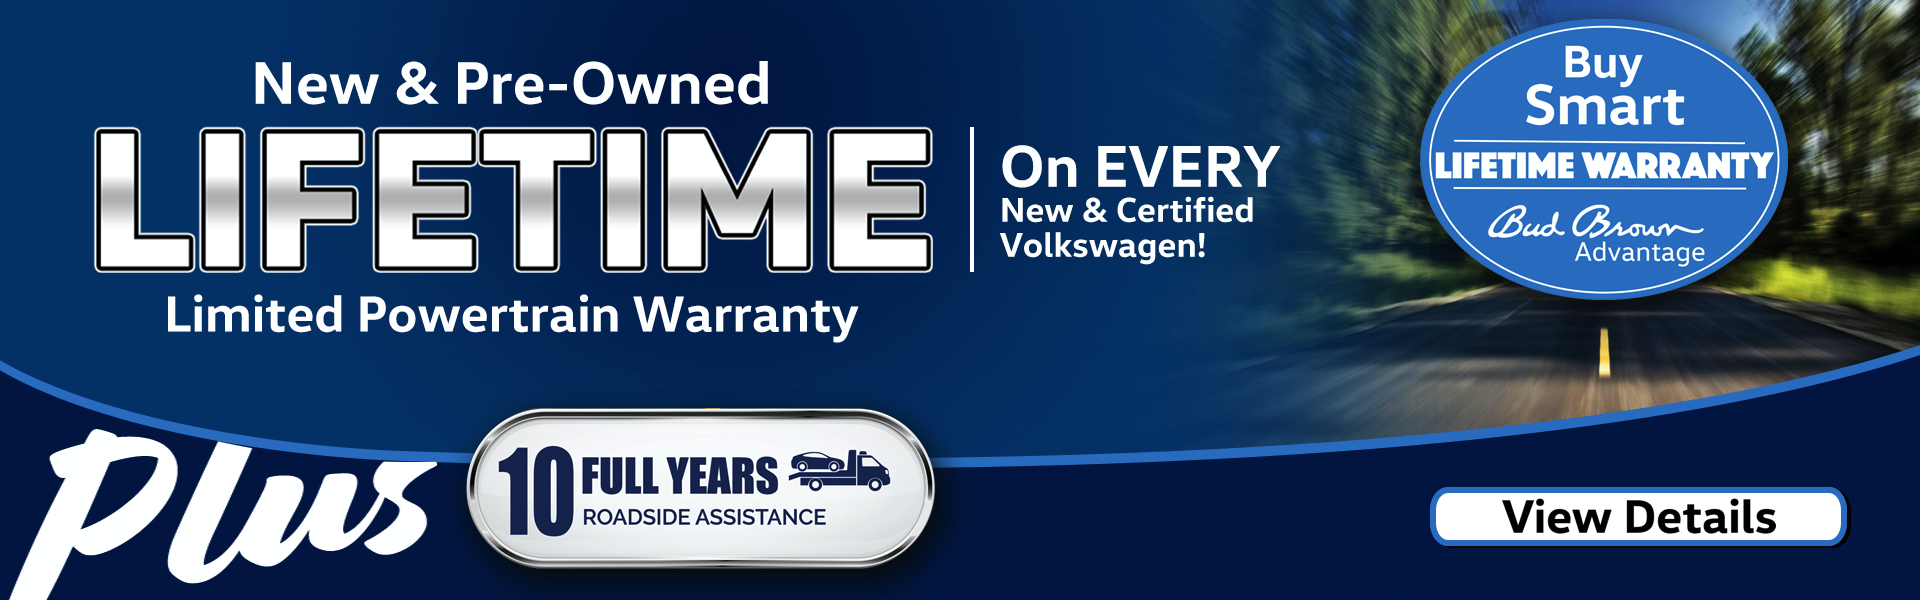 Bud Brown Exclusive Lifetime Warranty with Every New and Certified Pre-Owned Volkswagen